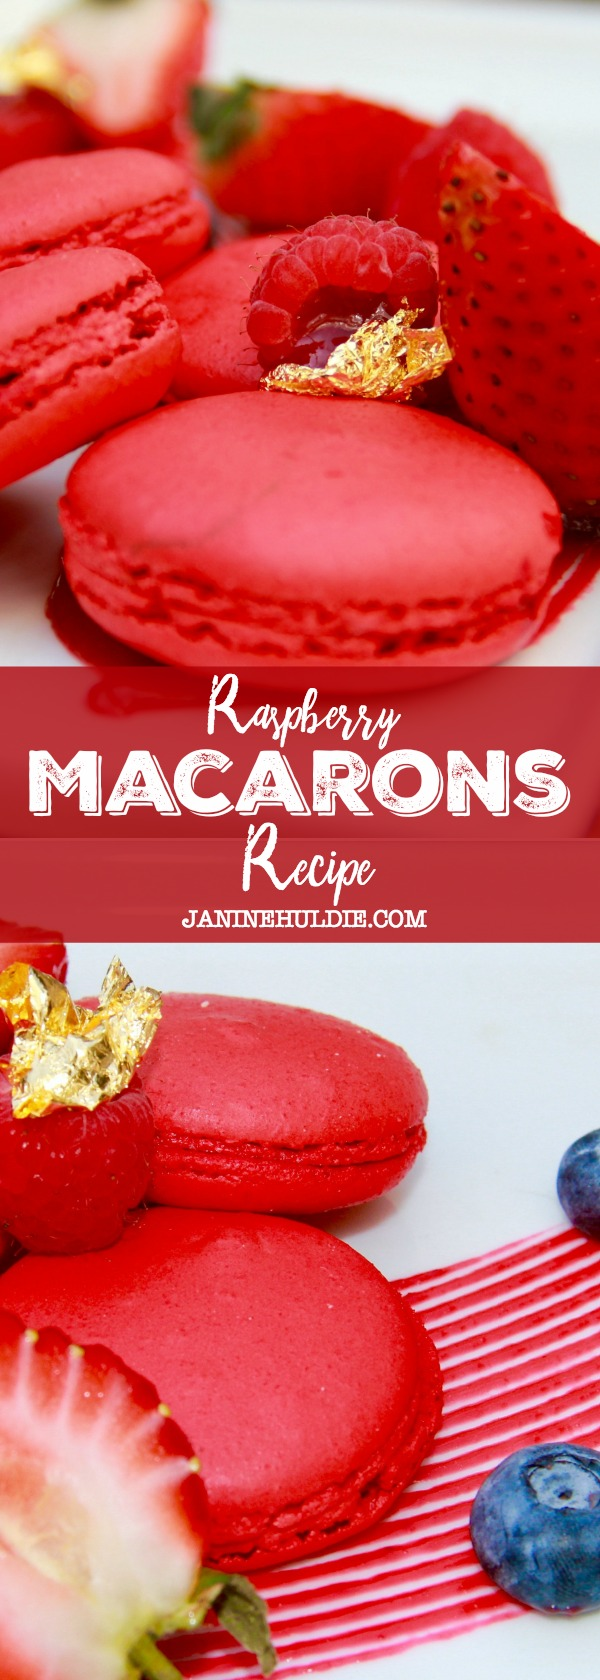 Raspberry Macarons Recipe